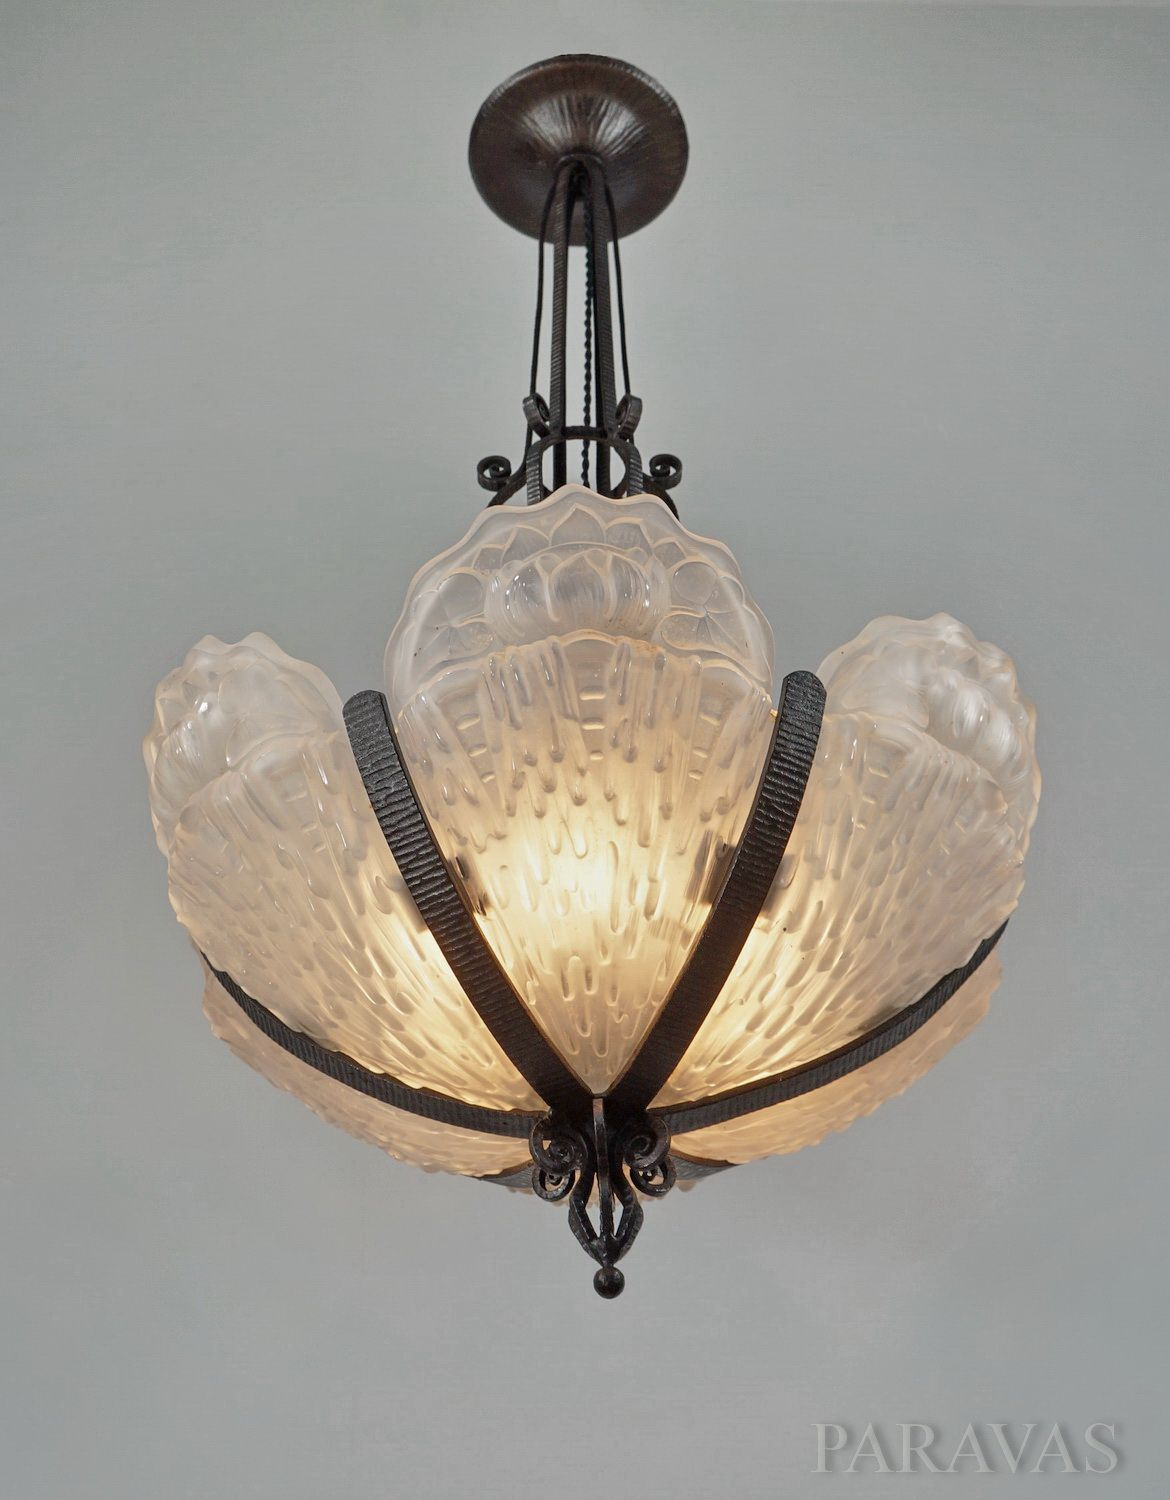 French 1930 art deco chandelier in wrought iron holding six large panels in moulded pressed glass made by val saint lambert paravas ebay